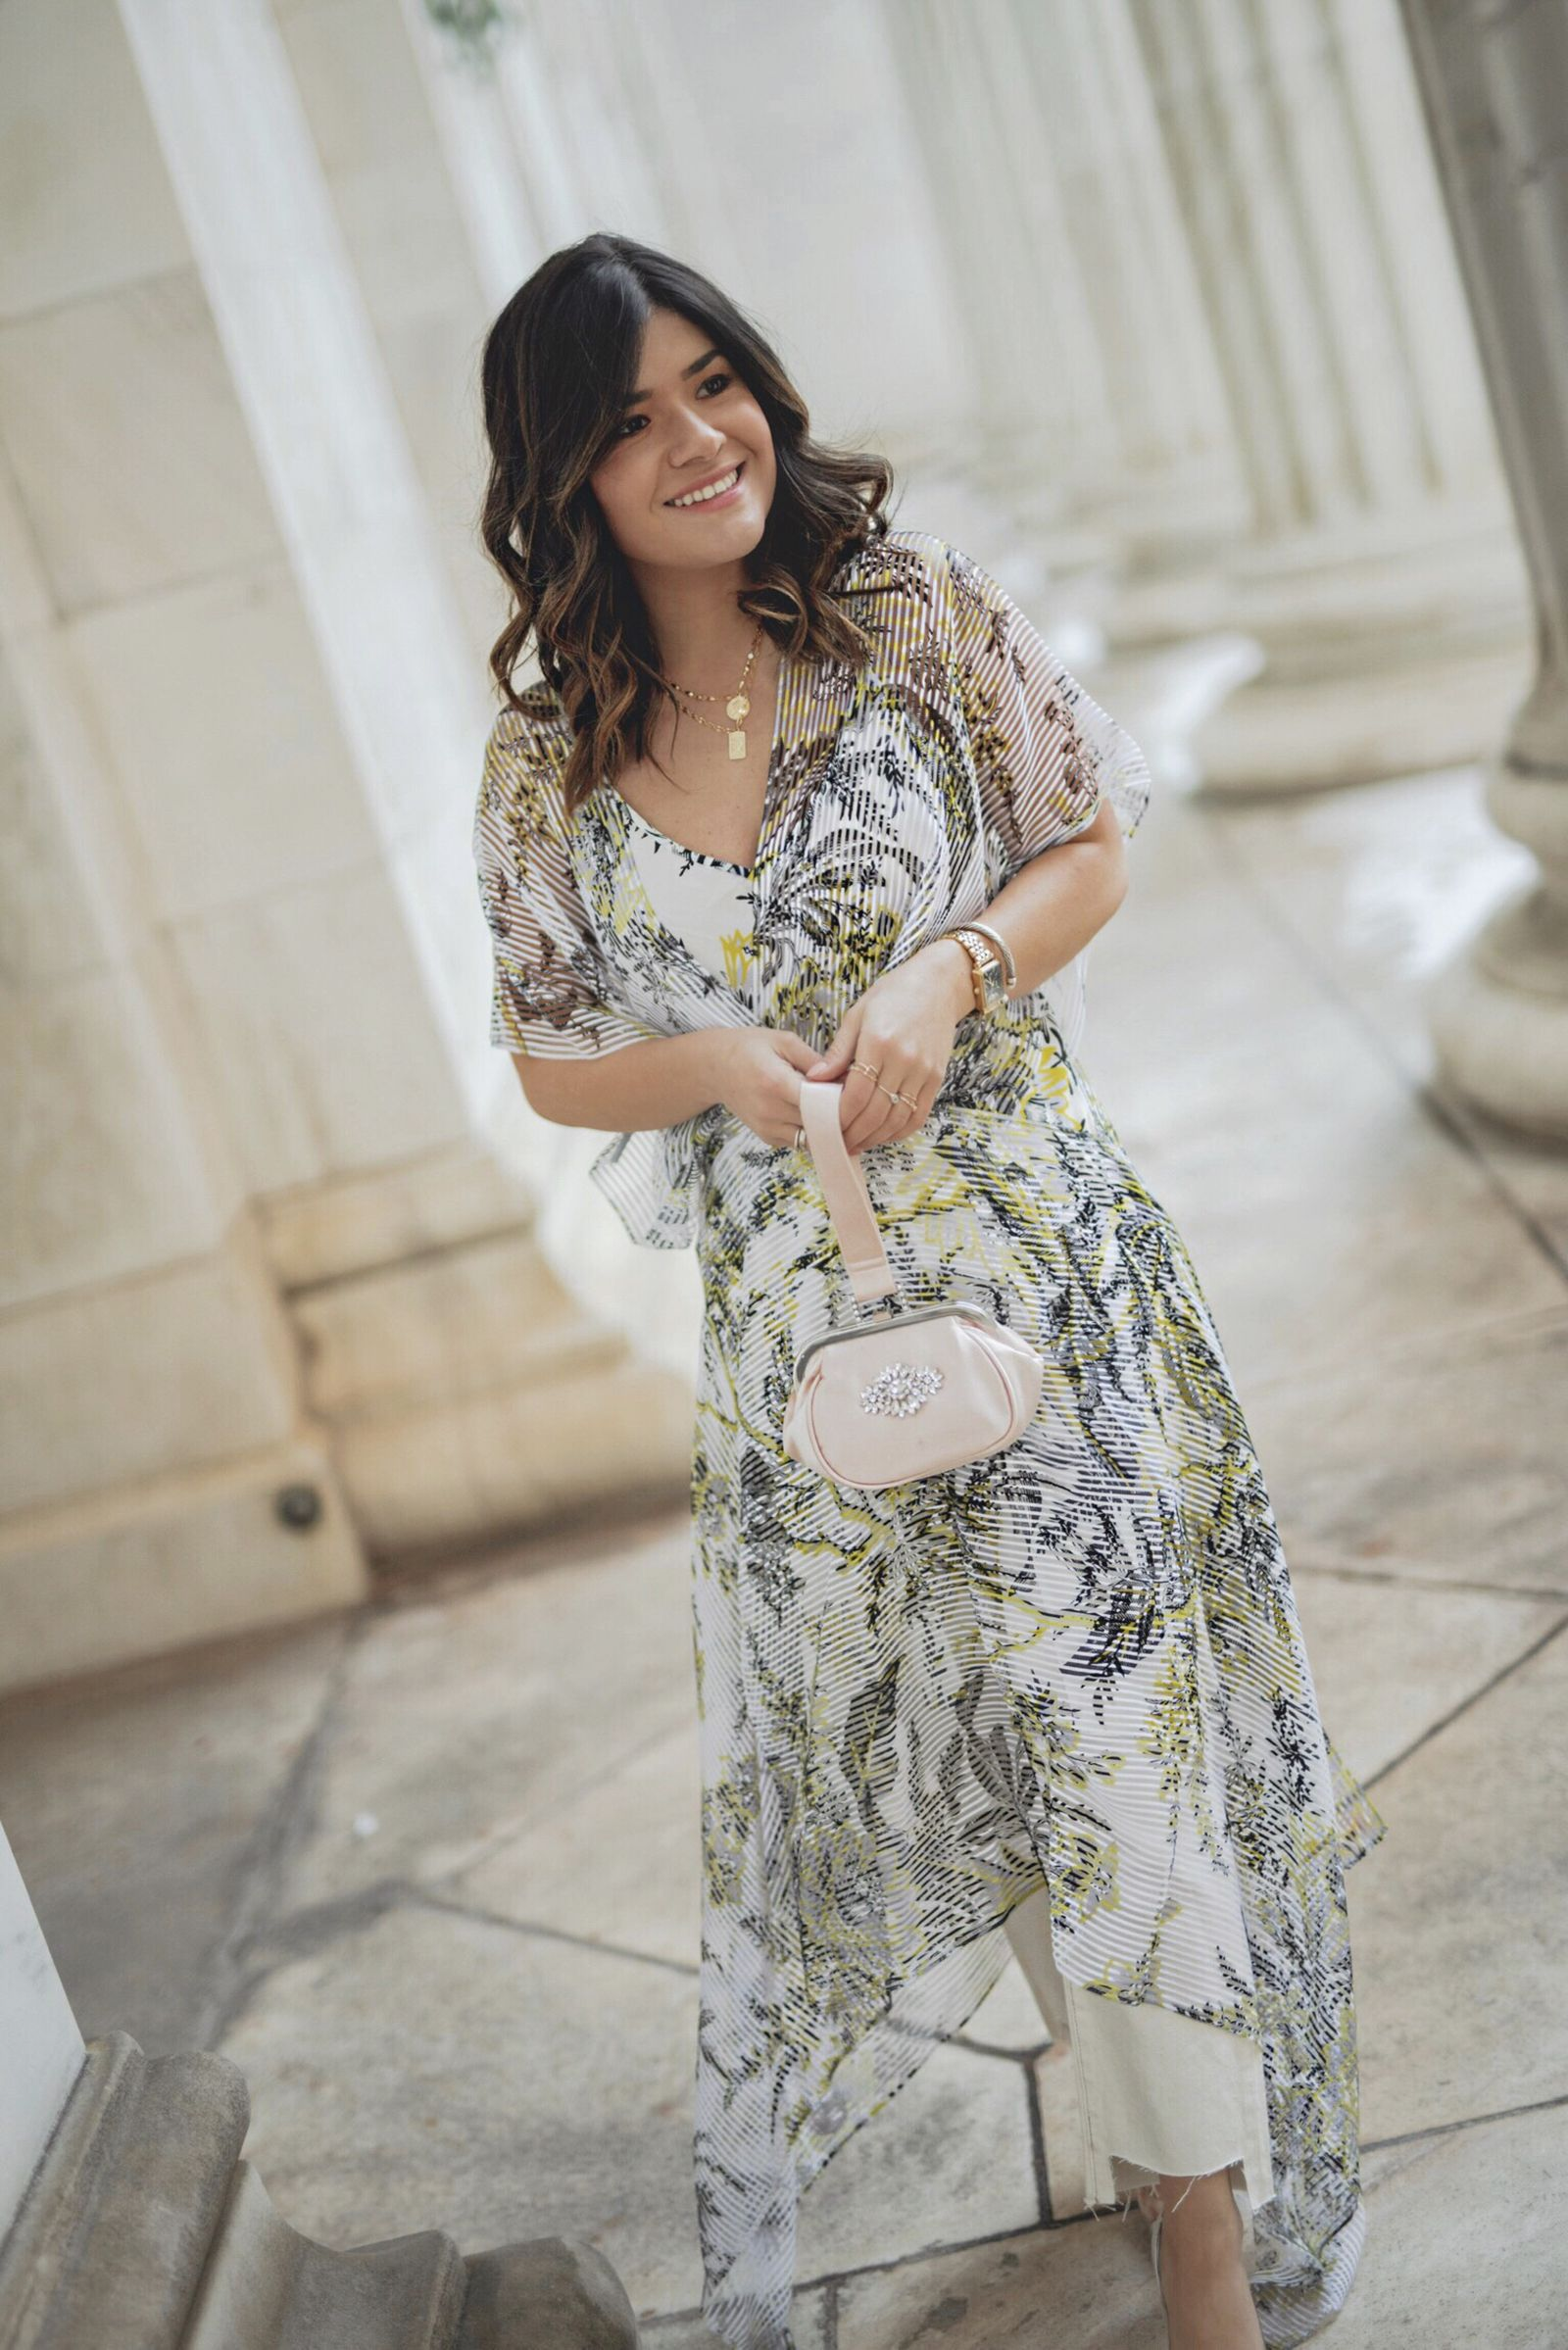 83d3f0f323ae THE T.J.MAXX SPRING SHOPPING EVENT YOU CAN'T MISS | CHIC TALK | CHIC TALK Spring  outfits, spring fashion, spring dresses, dresses every occasion, dress ...